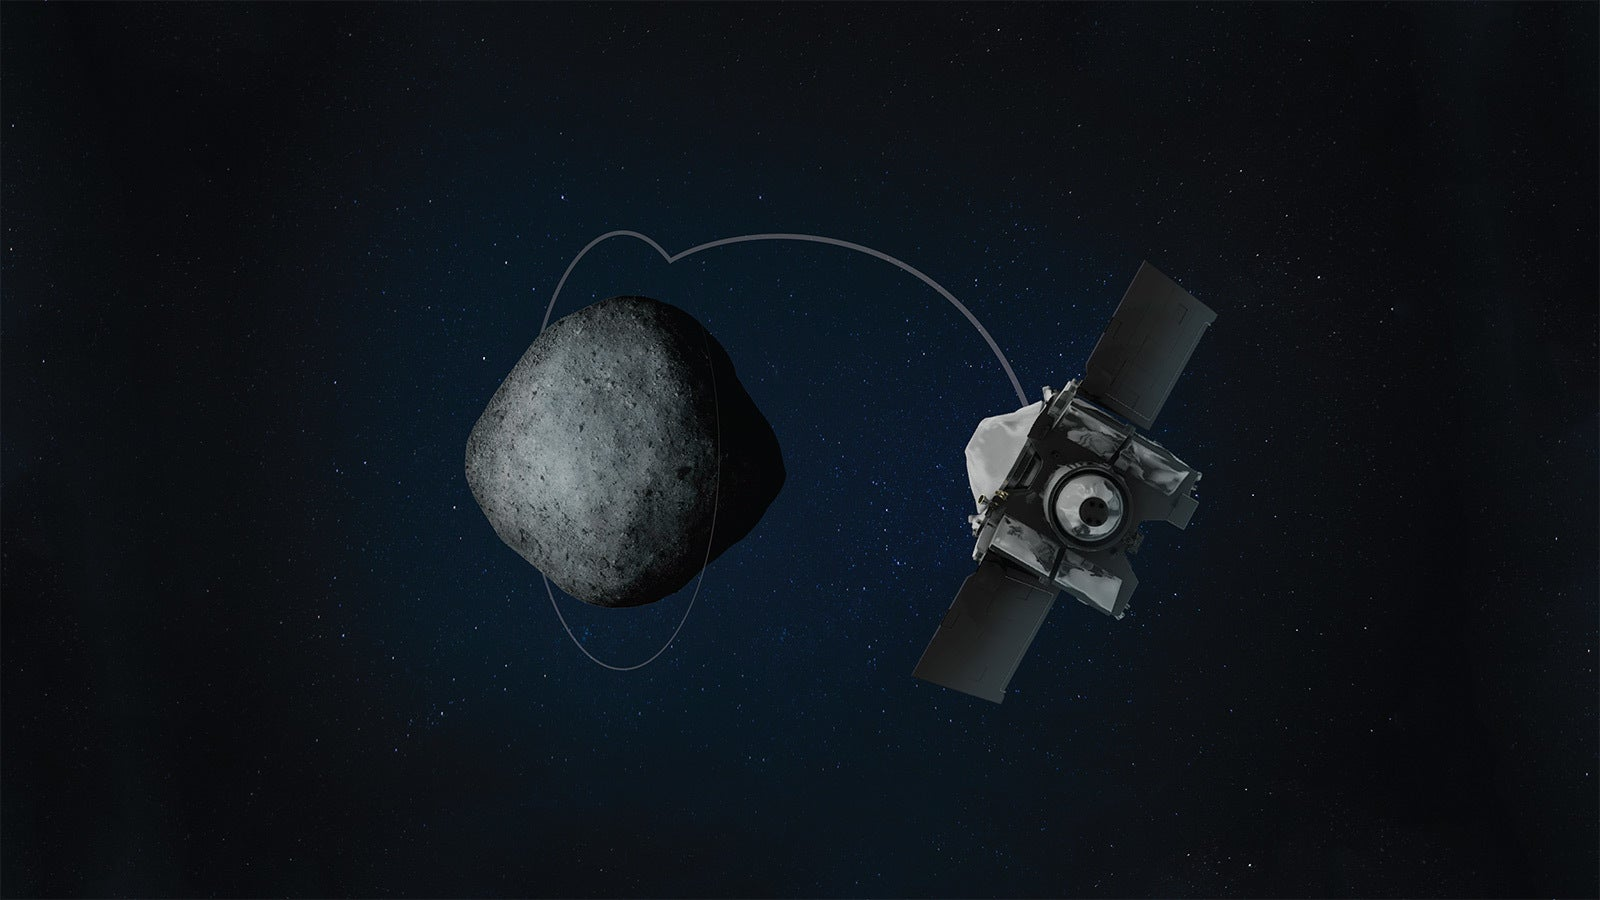 a drawing of a spacecraft orbiting a small asteroid